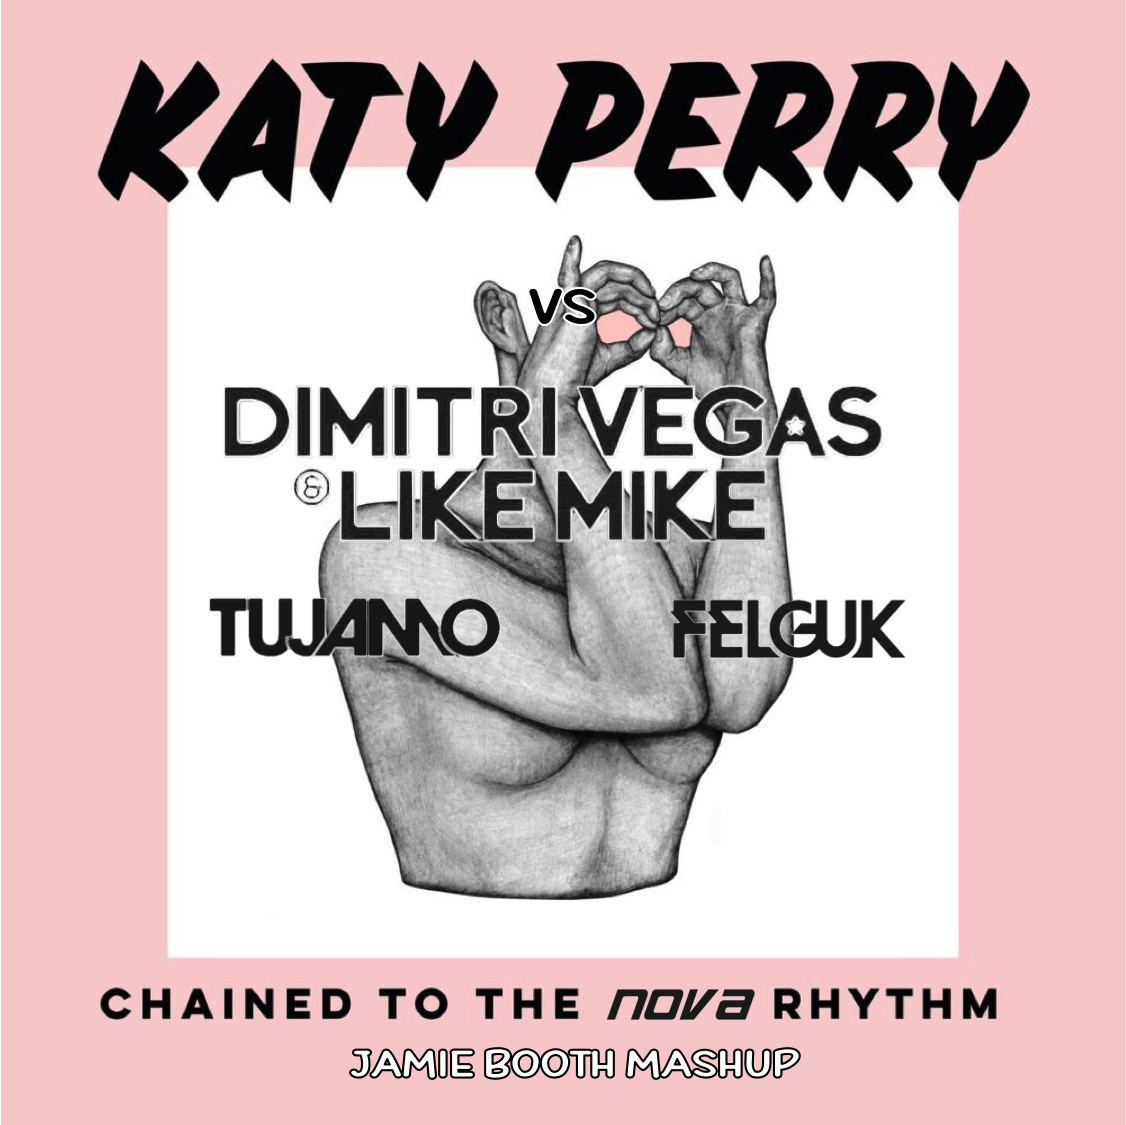 Chained To the Nova Rhythm (Jamie Booth Mashup) -Katy Perry, Skip Marley vs Dimitri Vegas Like Mike